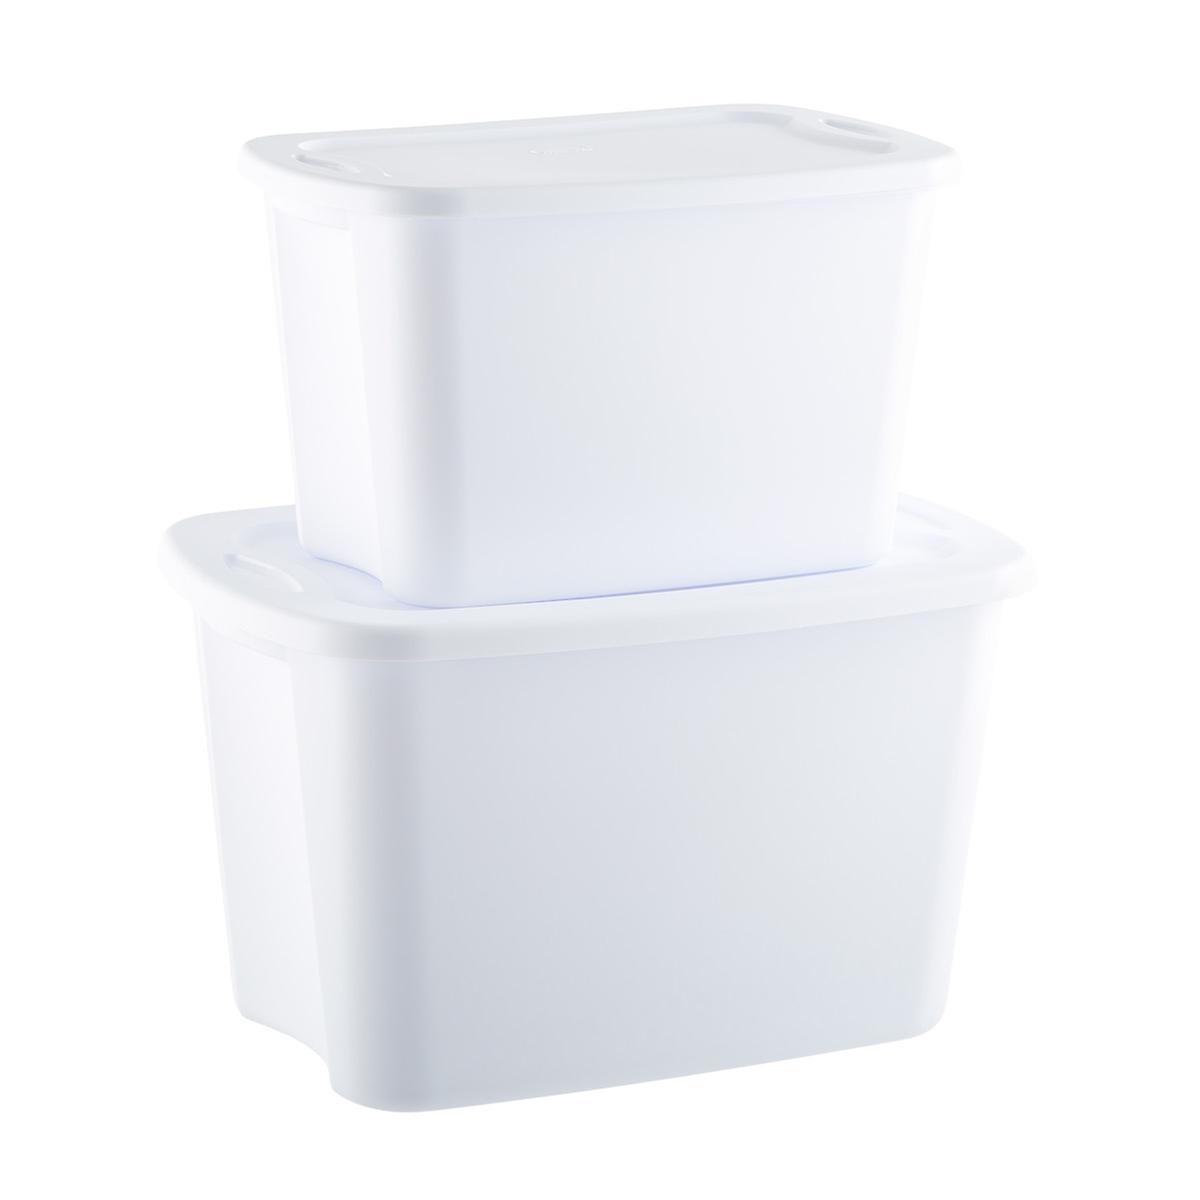 Cases of Sterilite White Tote Boxes